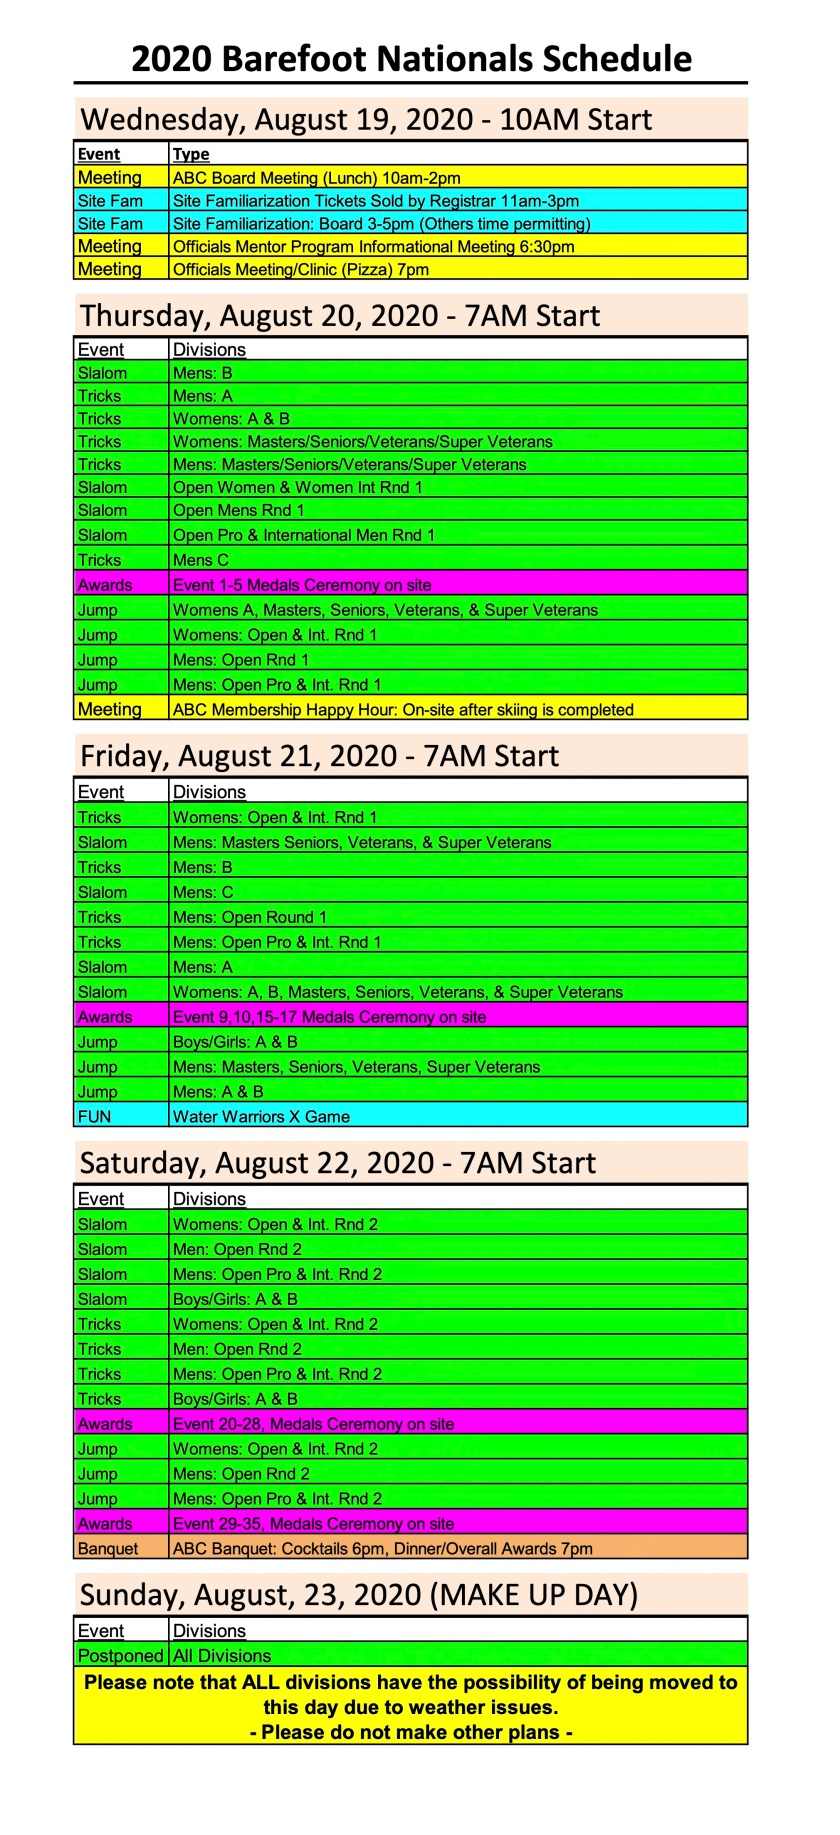 2020 Barefoot Nationals Schedule